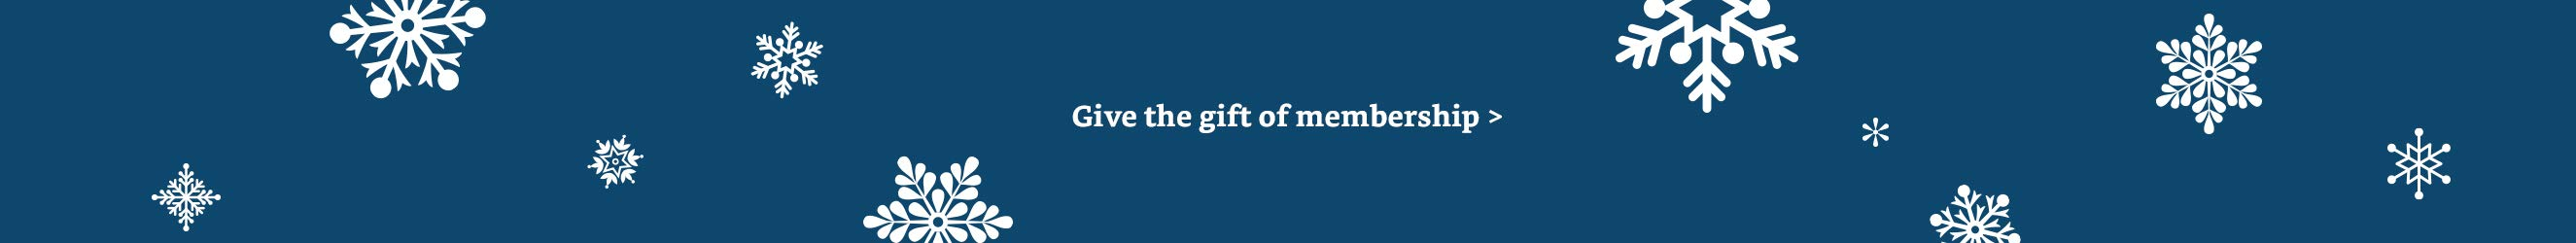 Click to give the gift of membership